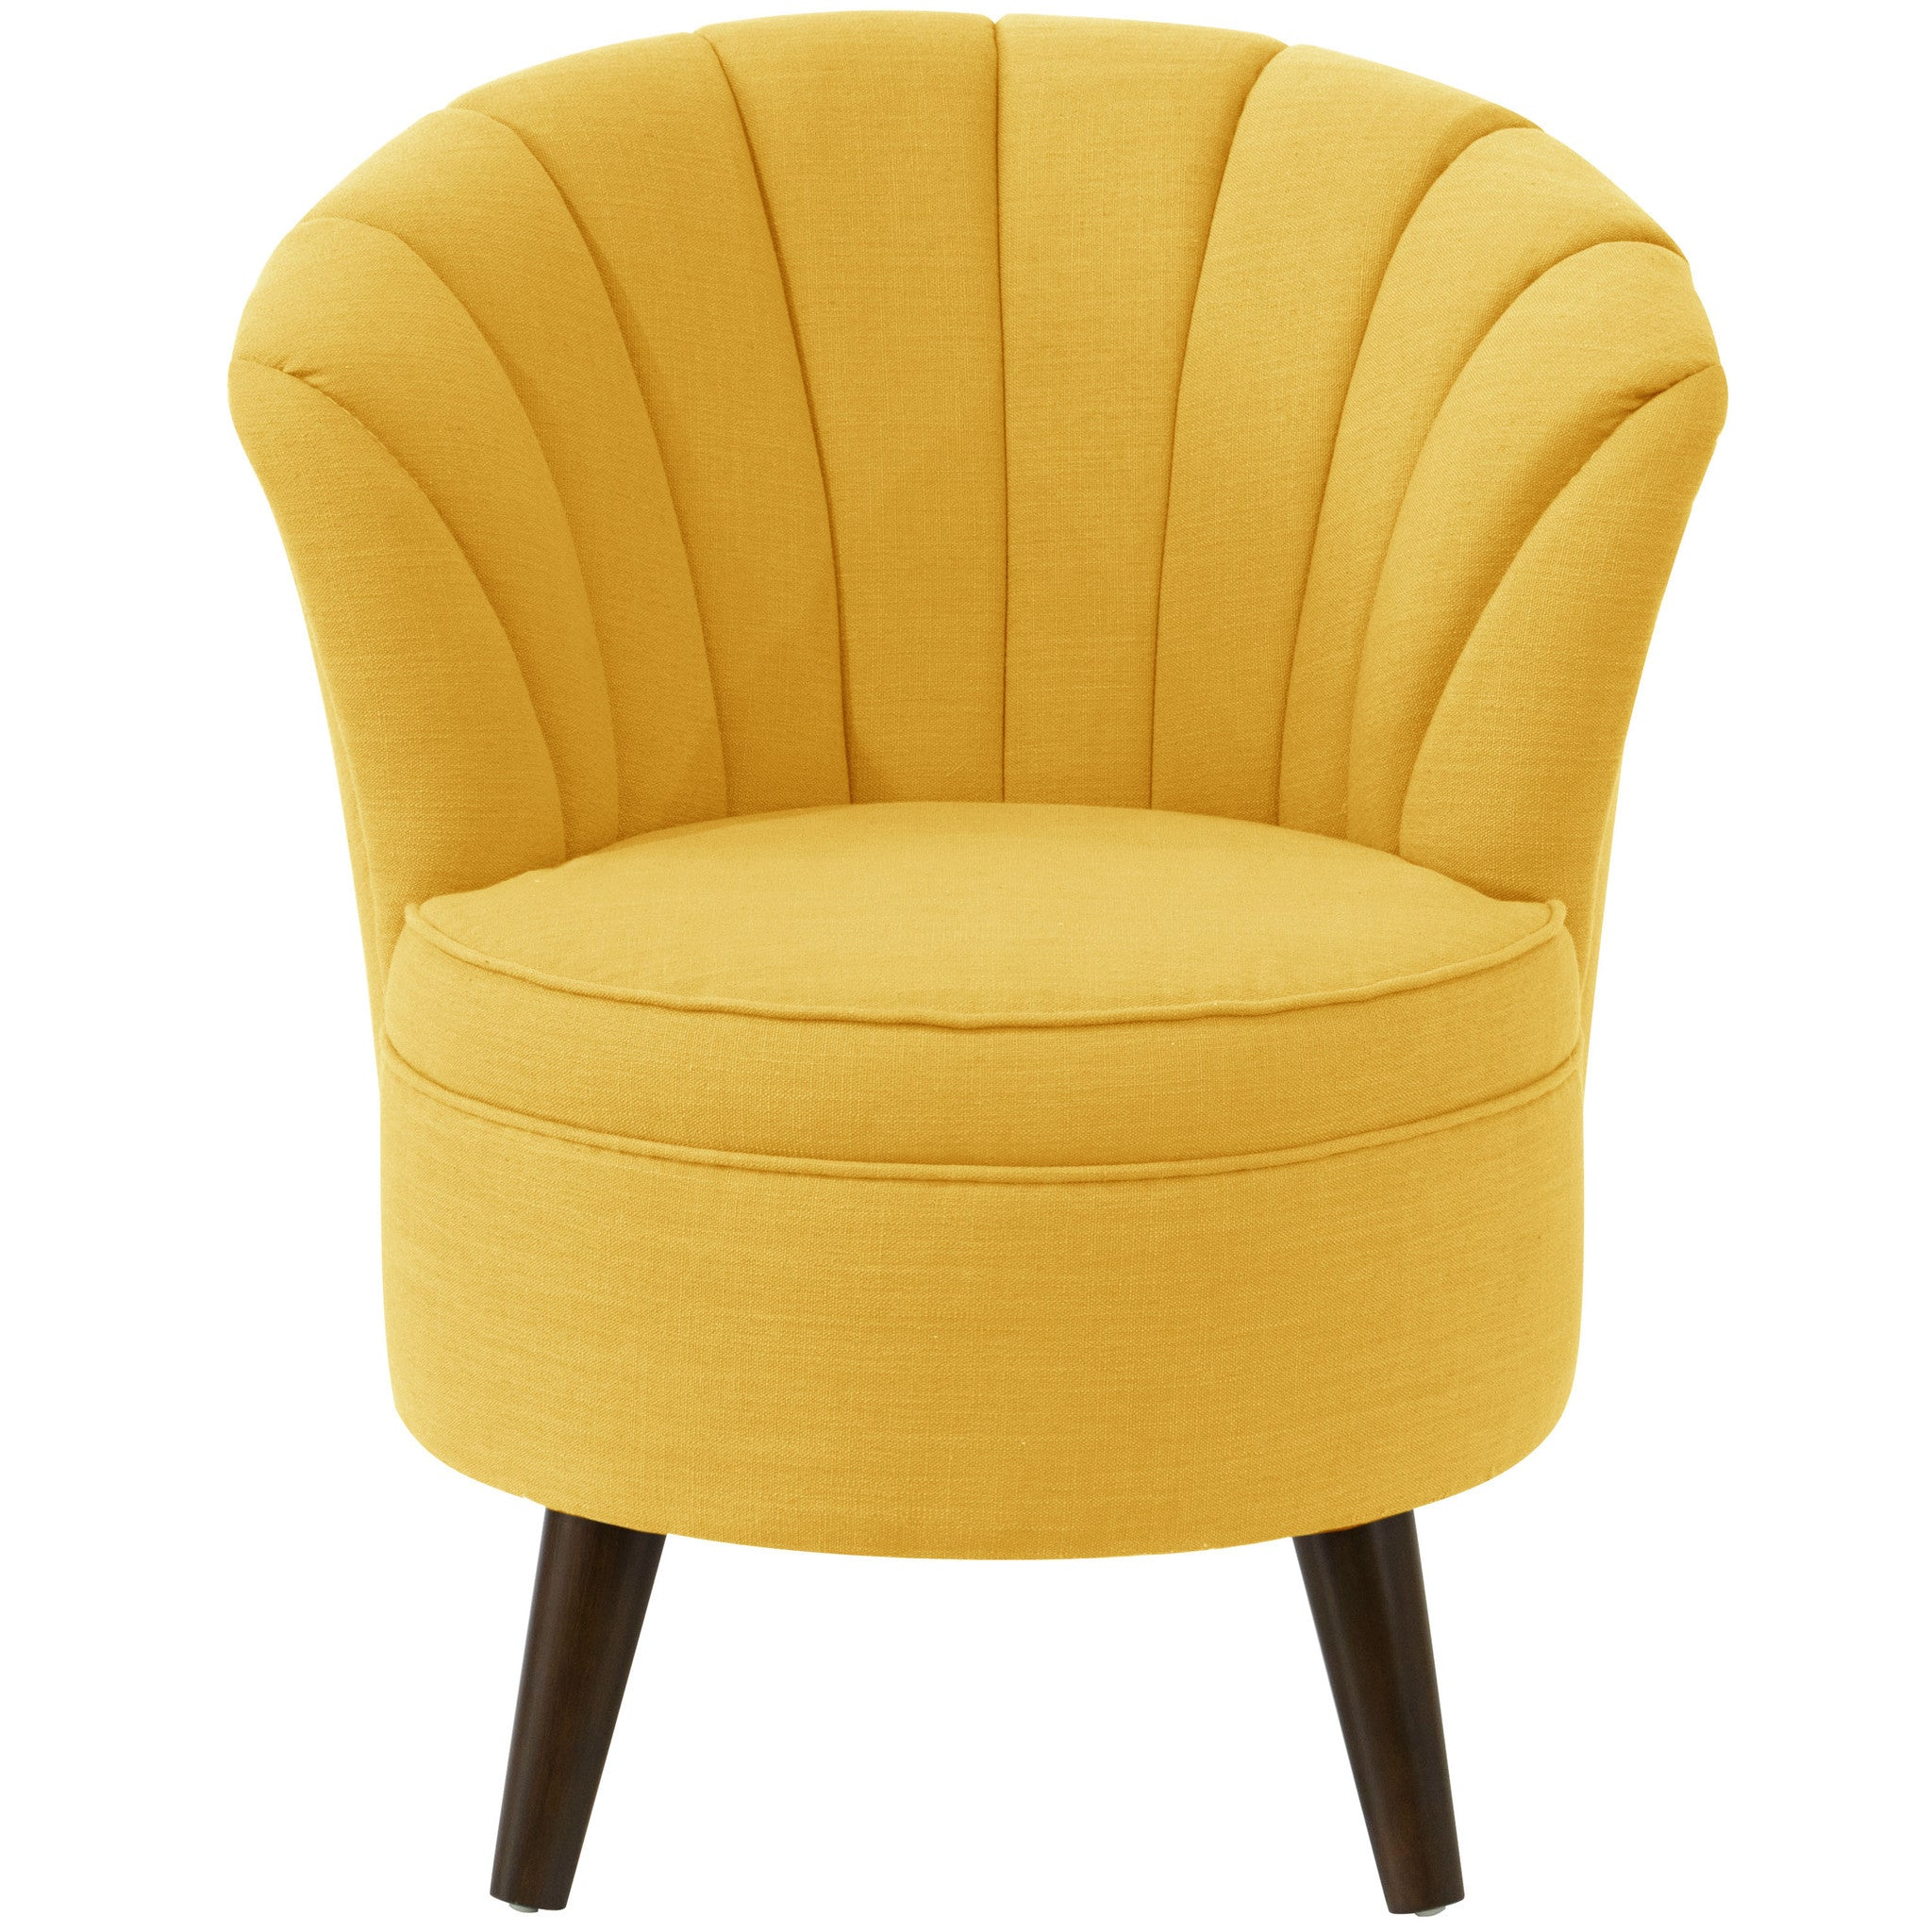 ... Angelo:HOME Channel Seam Barrel Chair In Linen French Yellow    Angelo:HOME ...